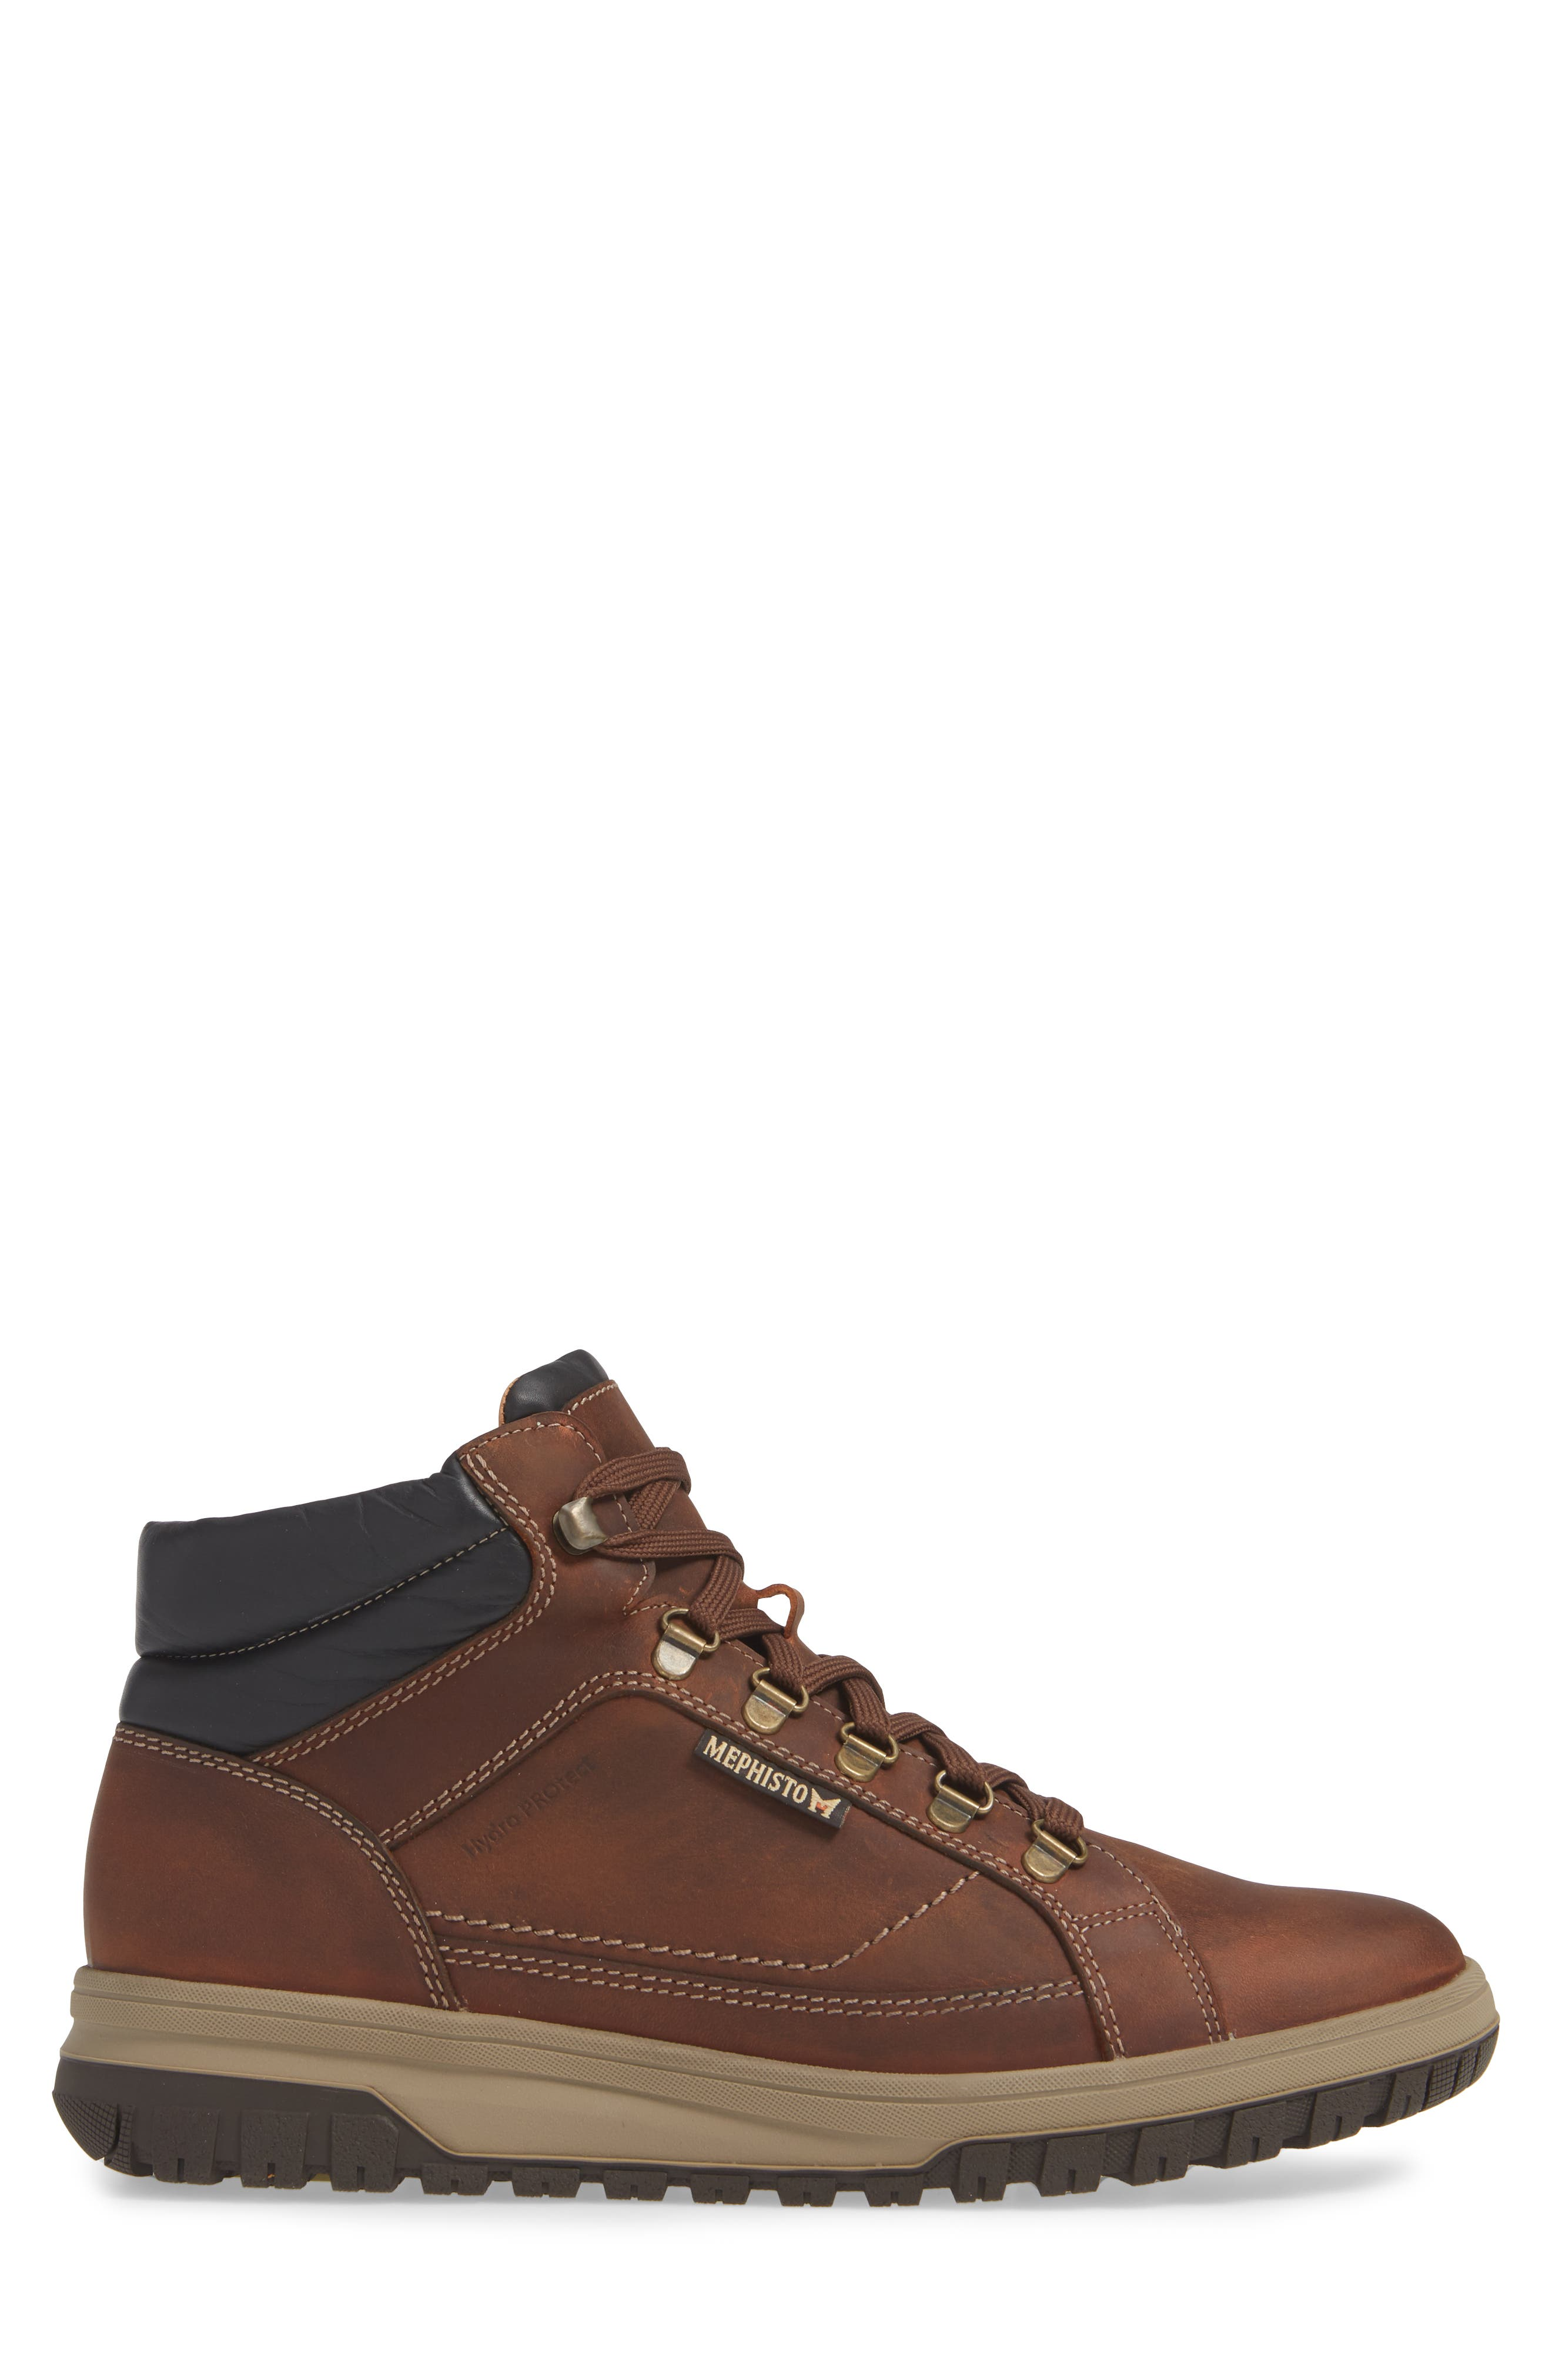 MEPHISTO, Pitt Mid Lace-Up Boot, Alternate thumbnail 3, color, 213